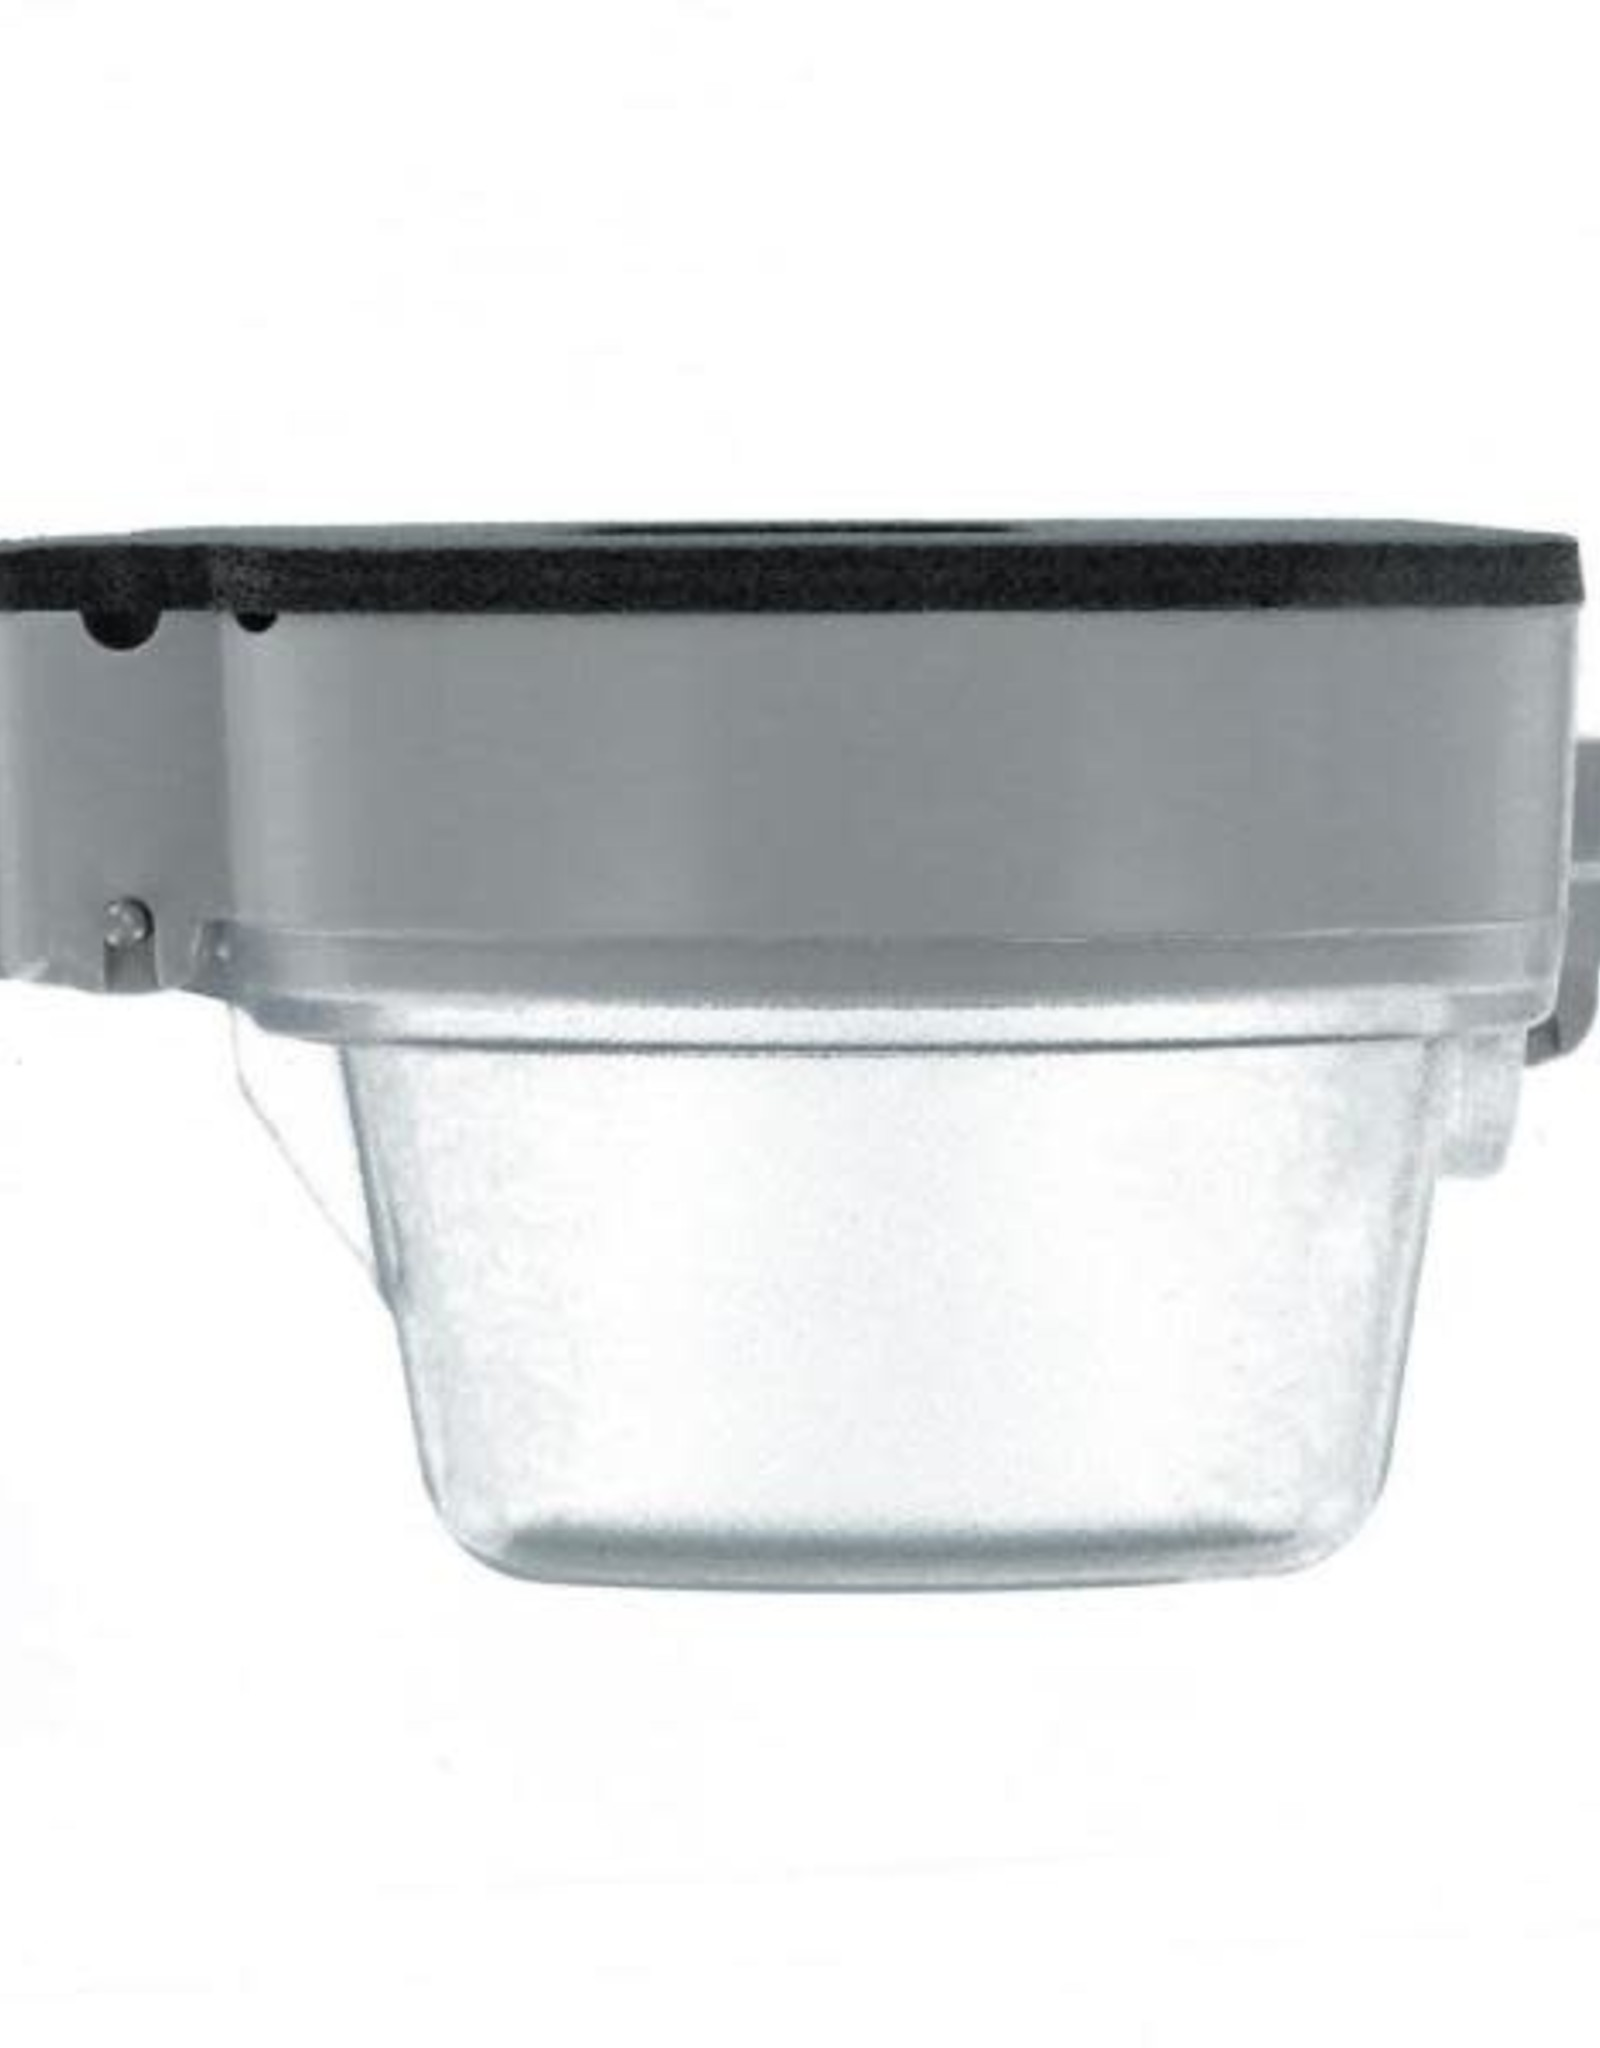 Leviton Decora/GFCI 1-Gang Extra Heavy Duty Raintight While-In-Use Device Mount Horizontal Cover with Lid, Clear